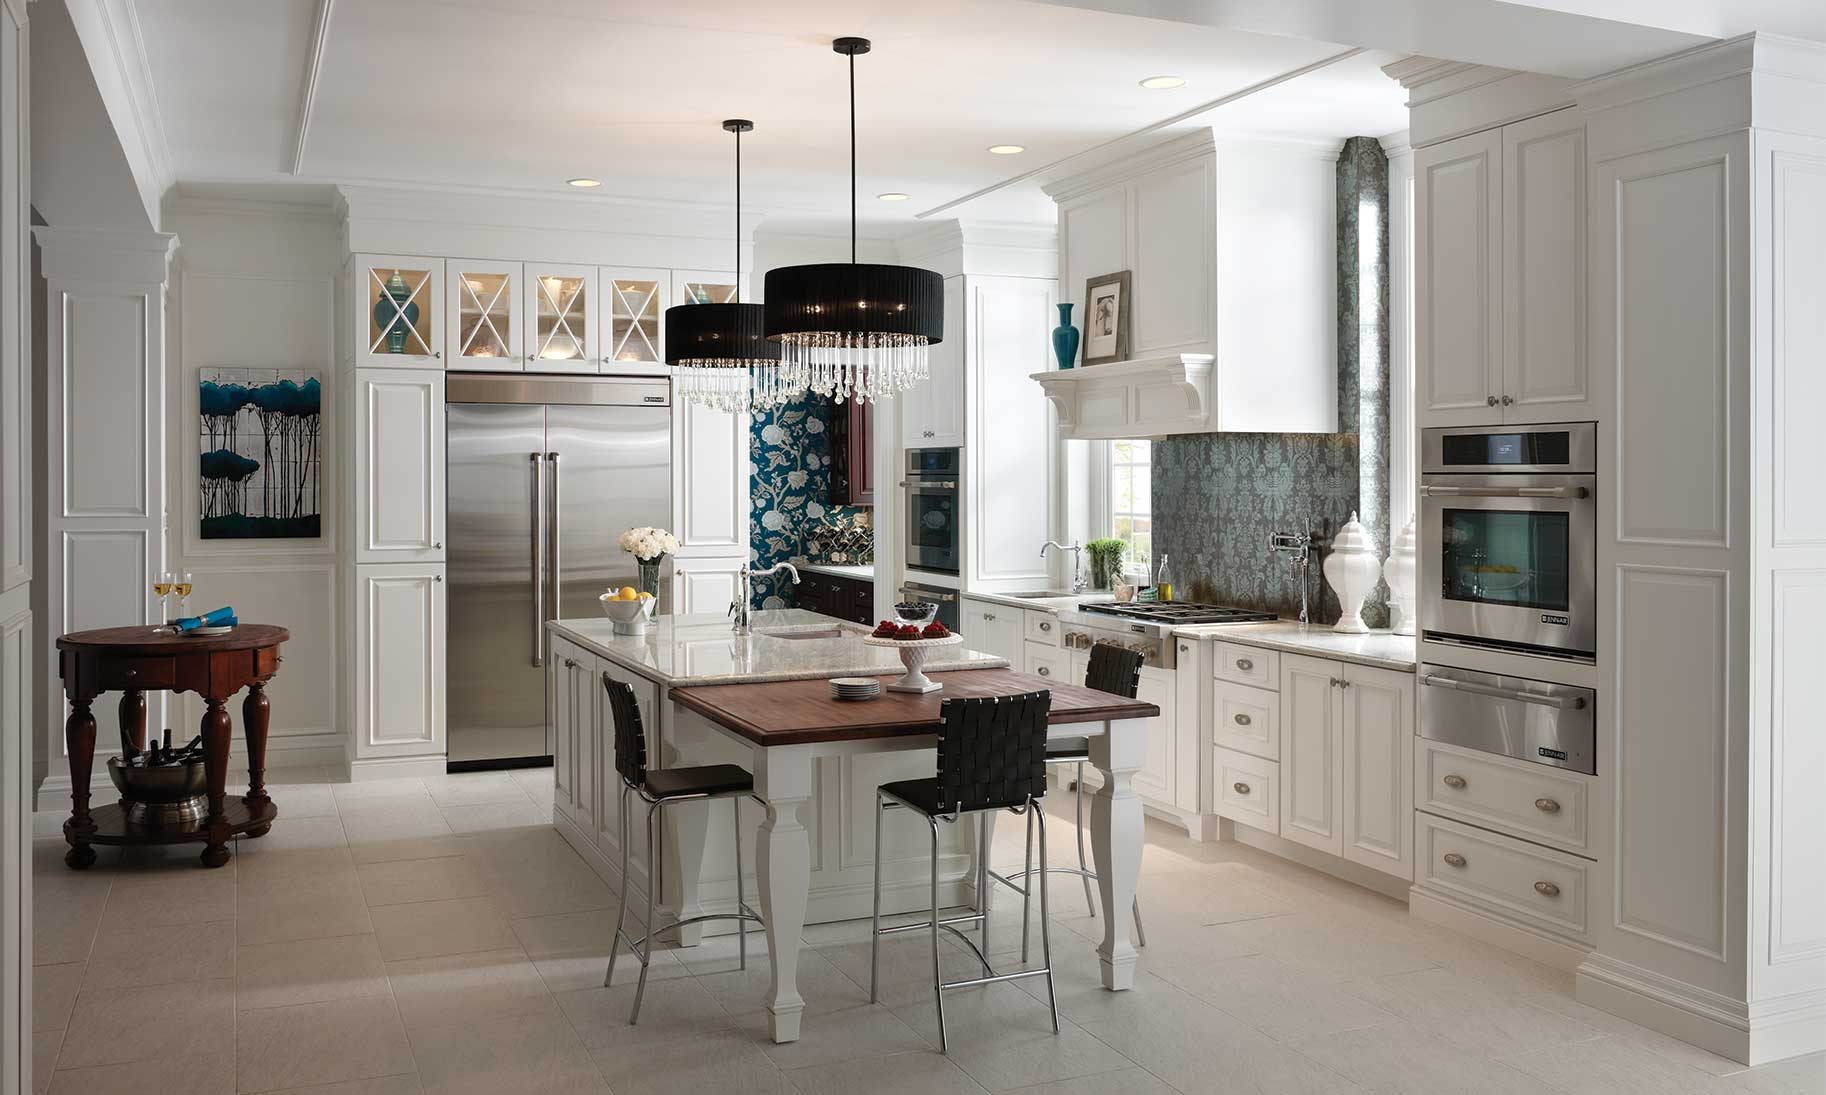 masterstouchkbw kitchen and bath design Your dream kitchen and bathroom design team